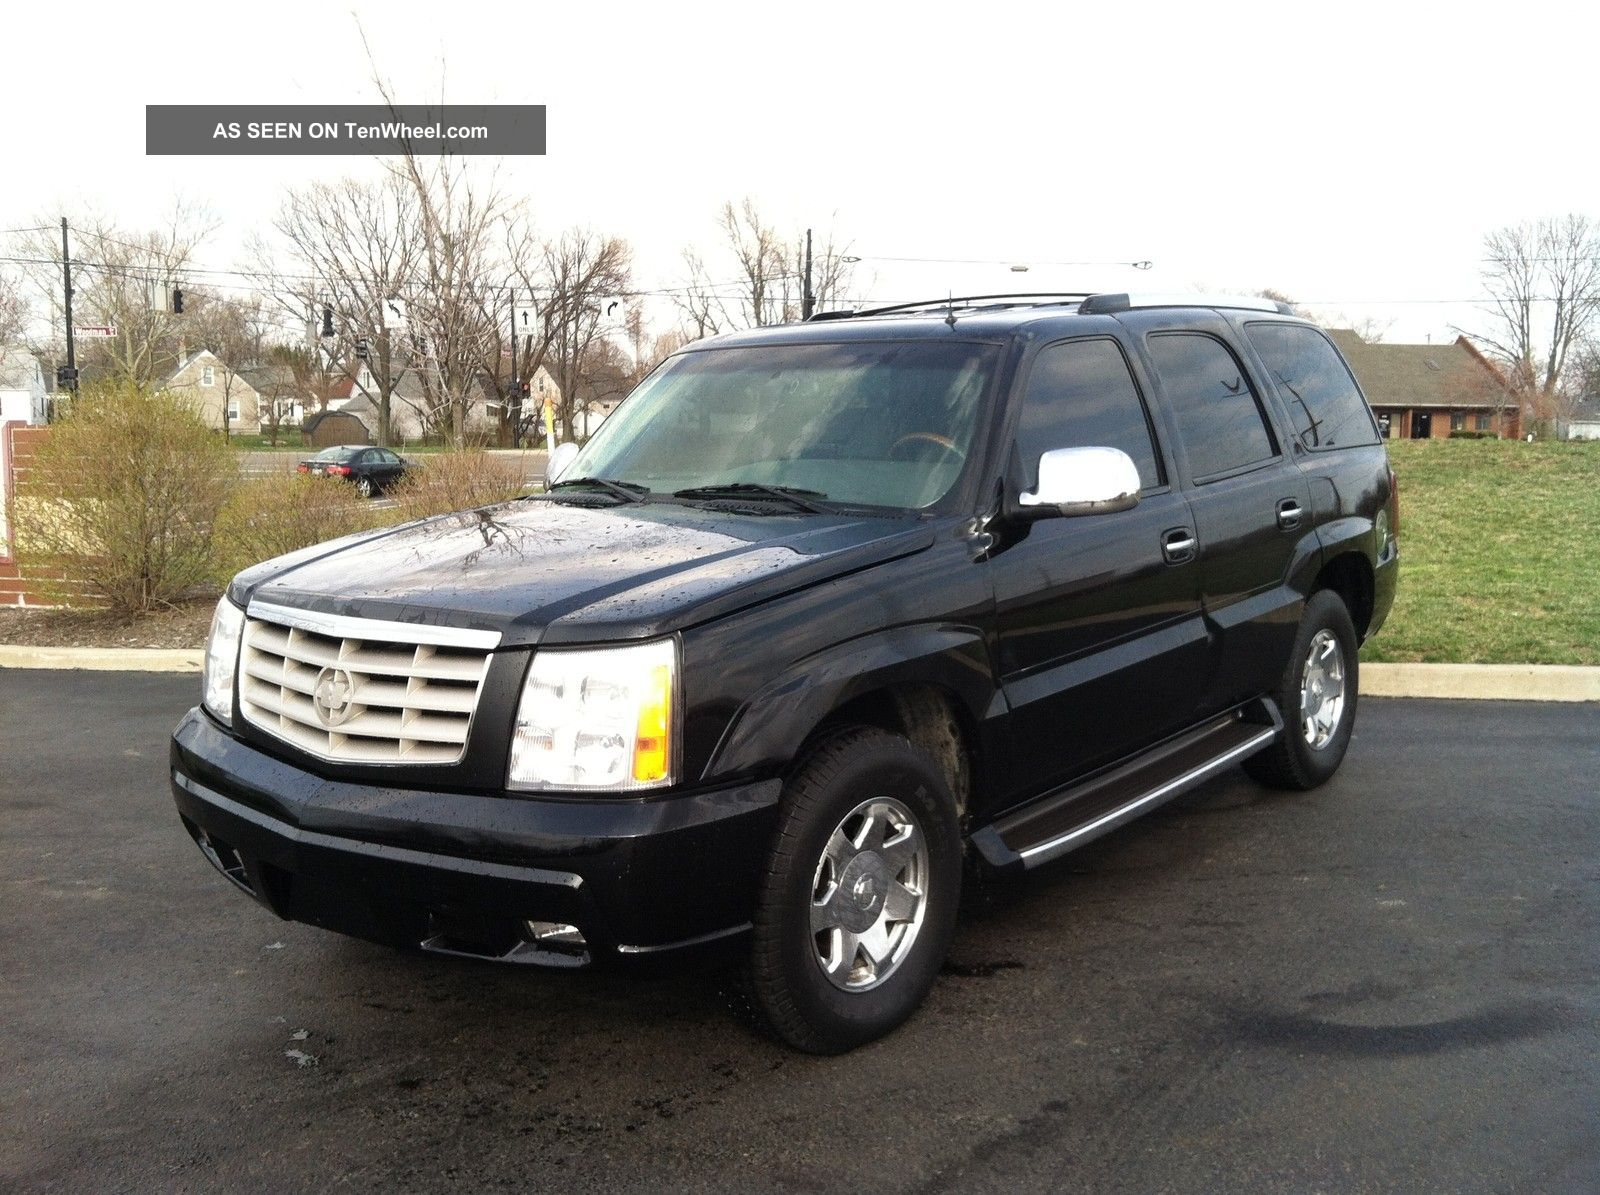 Cadillac Escalade 6.0i 2002 photo - 3